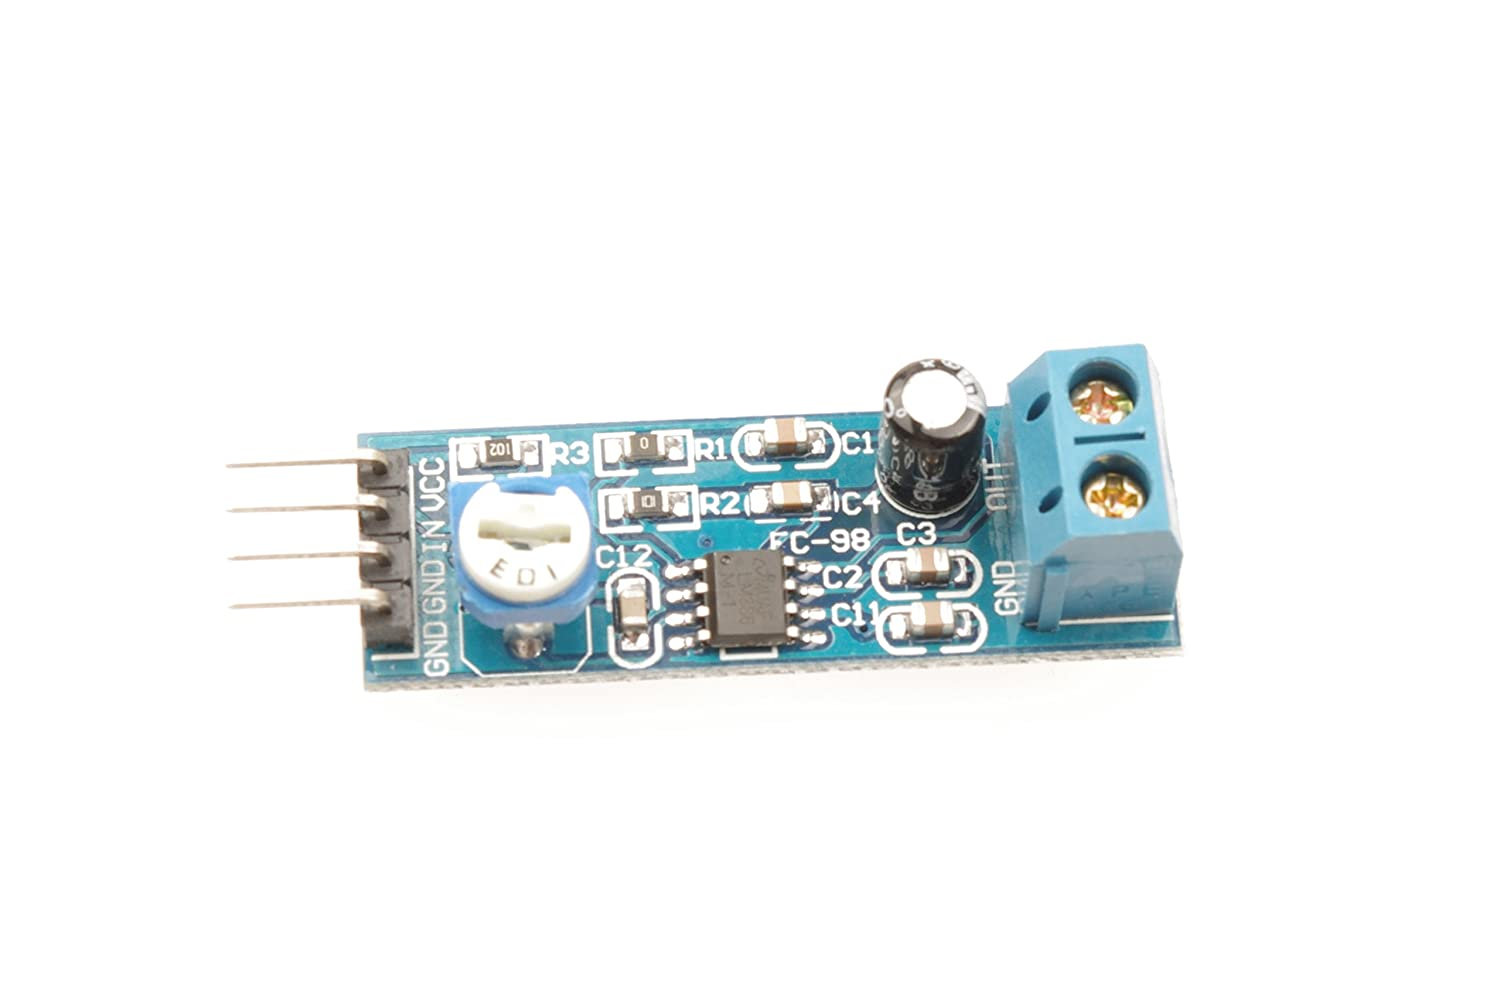 Uxcell Lm386 Audio Amplifier Module 200 Times 5 12v 10k Voice Circuit Using Operational Adjustable Resistance Car Electronics